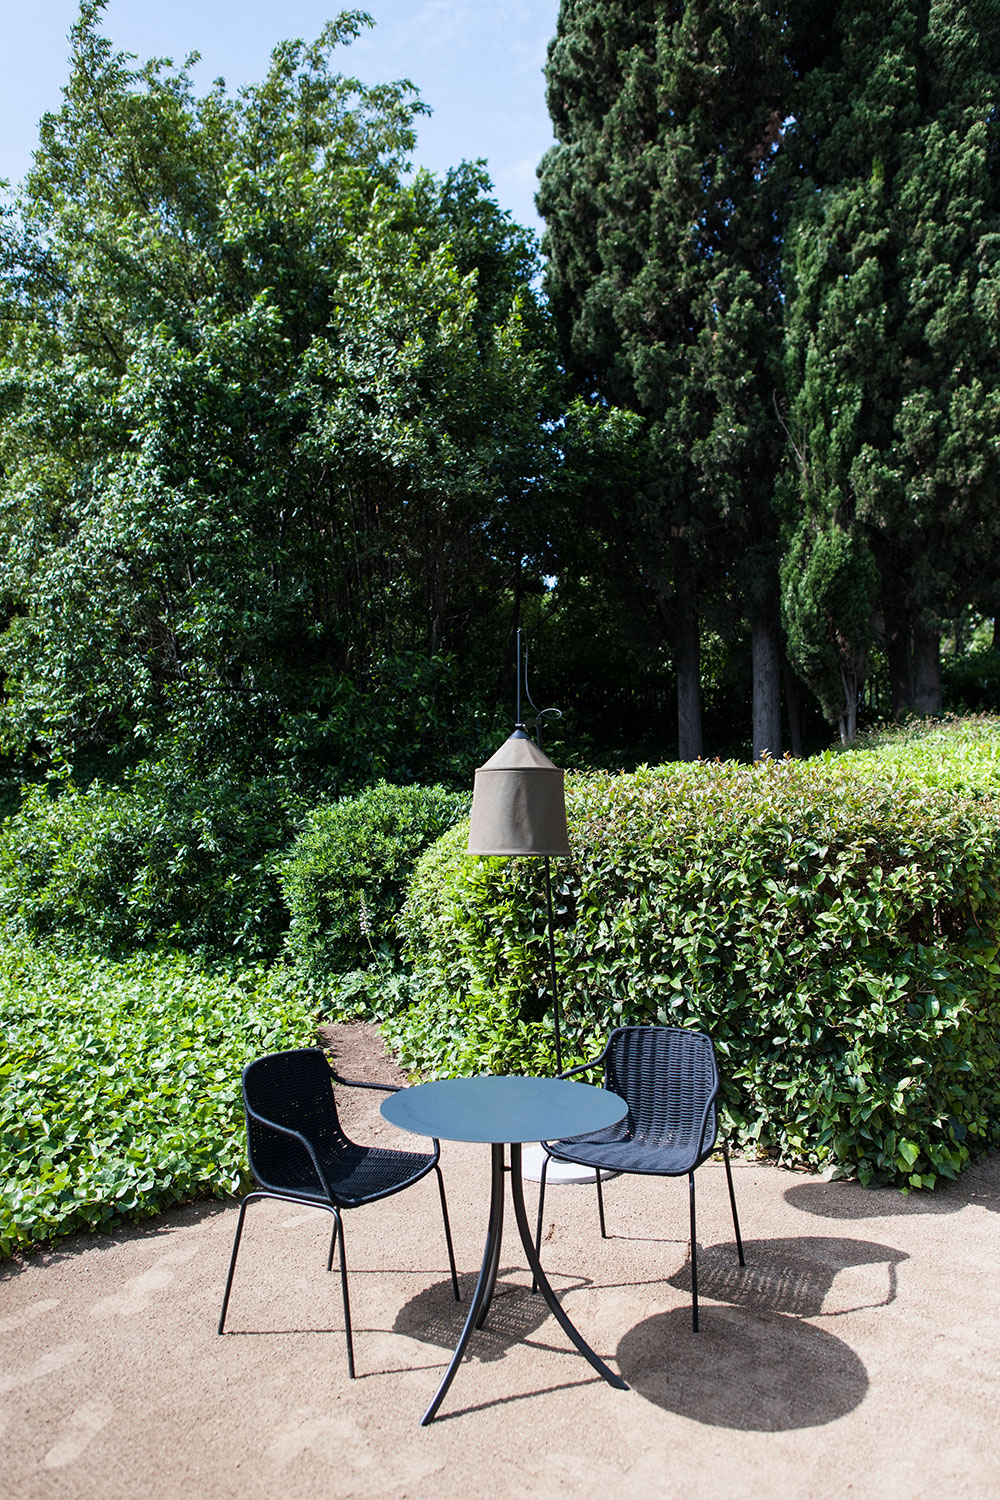 expormim-furniture-outdoor-lapala-chair-event-openhouse-magazine-5